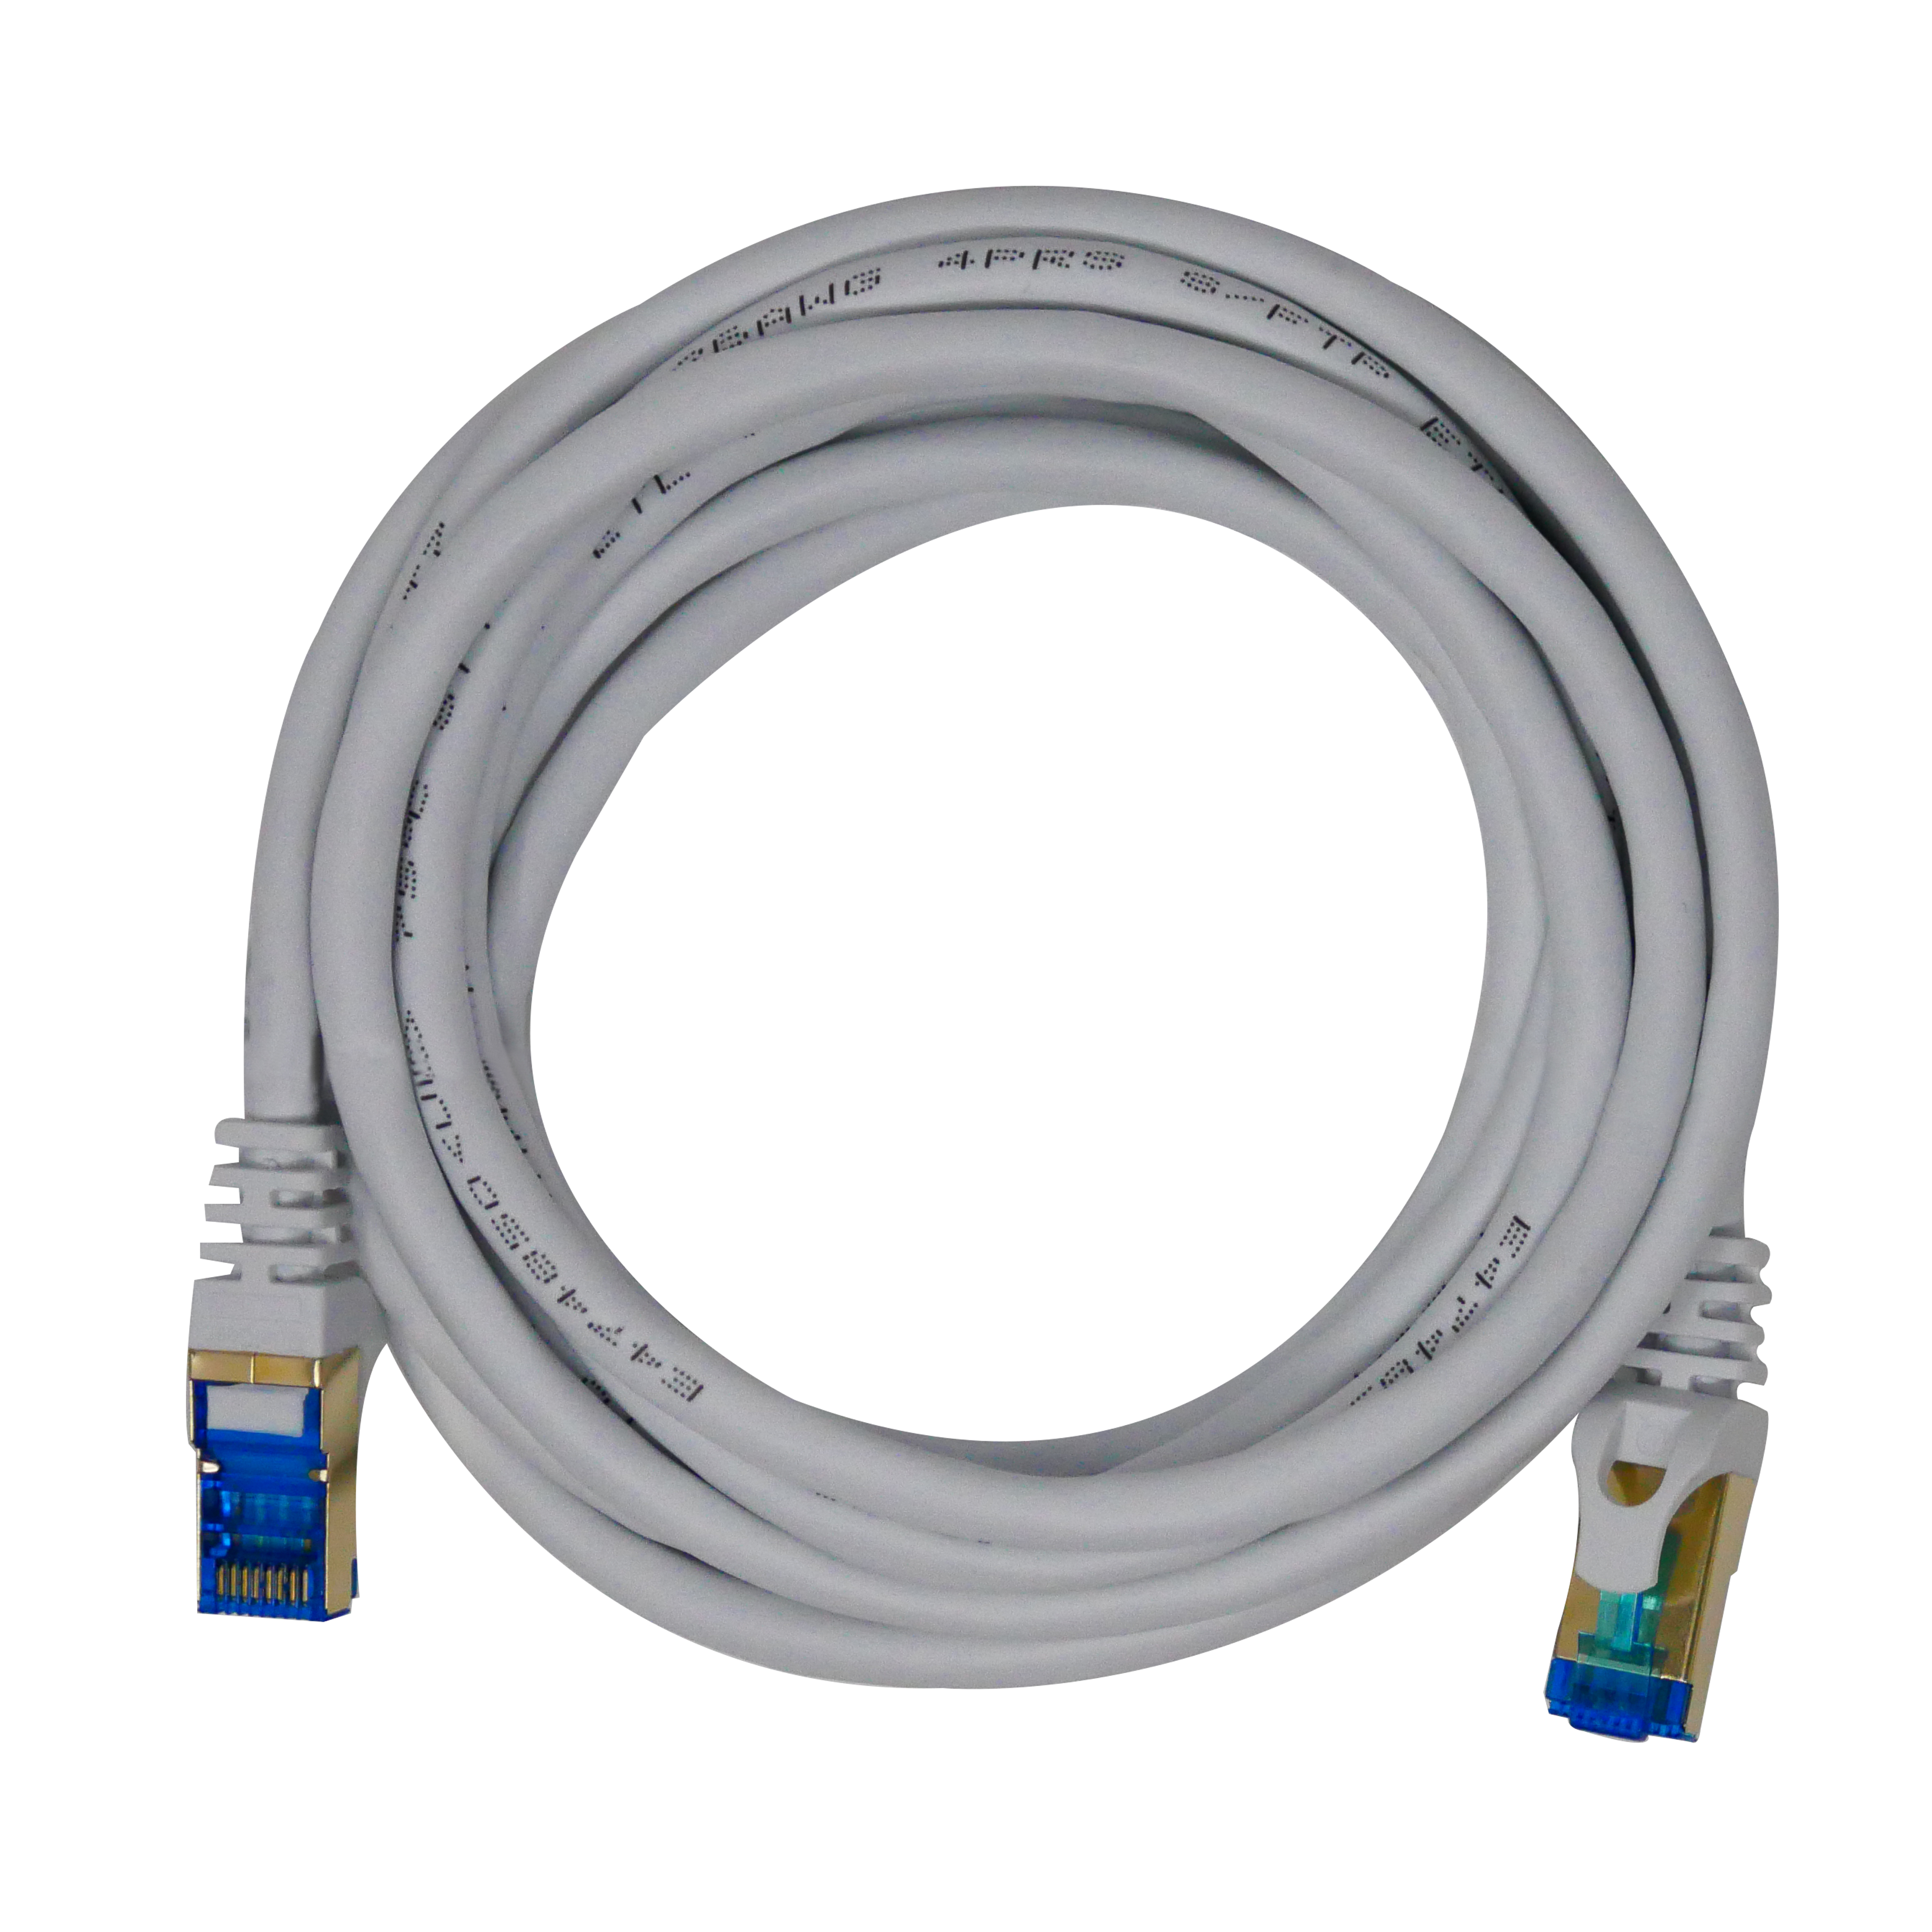 QualGear QG-CAT7R-10FT-WHT CAT 7 S/FTP Ethernet Cable Length 10 feet - 26 AWG, 10 Gbps, Gold Plated Contacts, RJ45, 99.99% OFC Copper, Color White